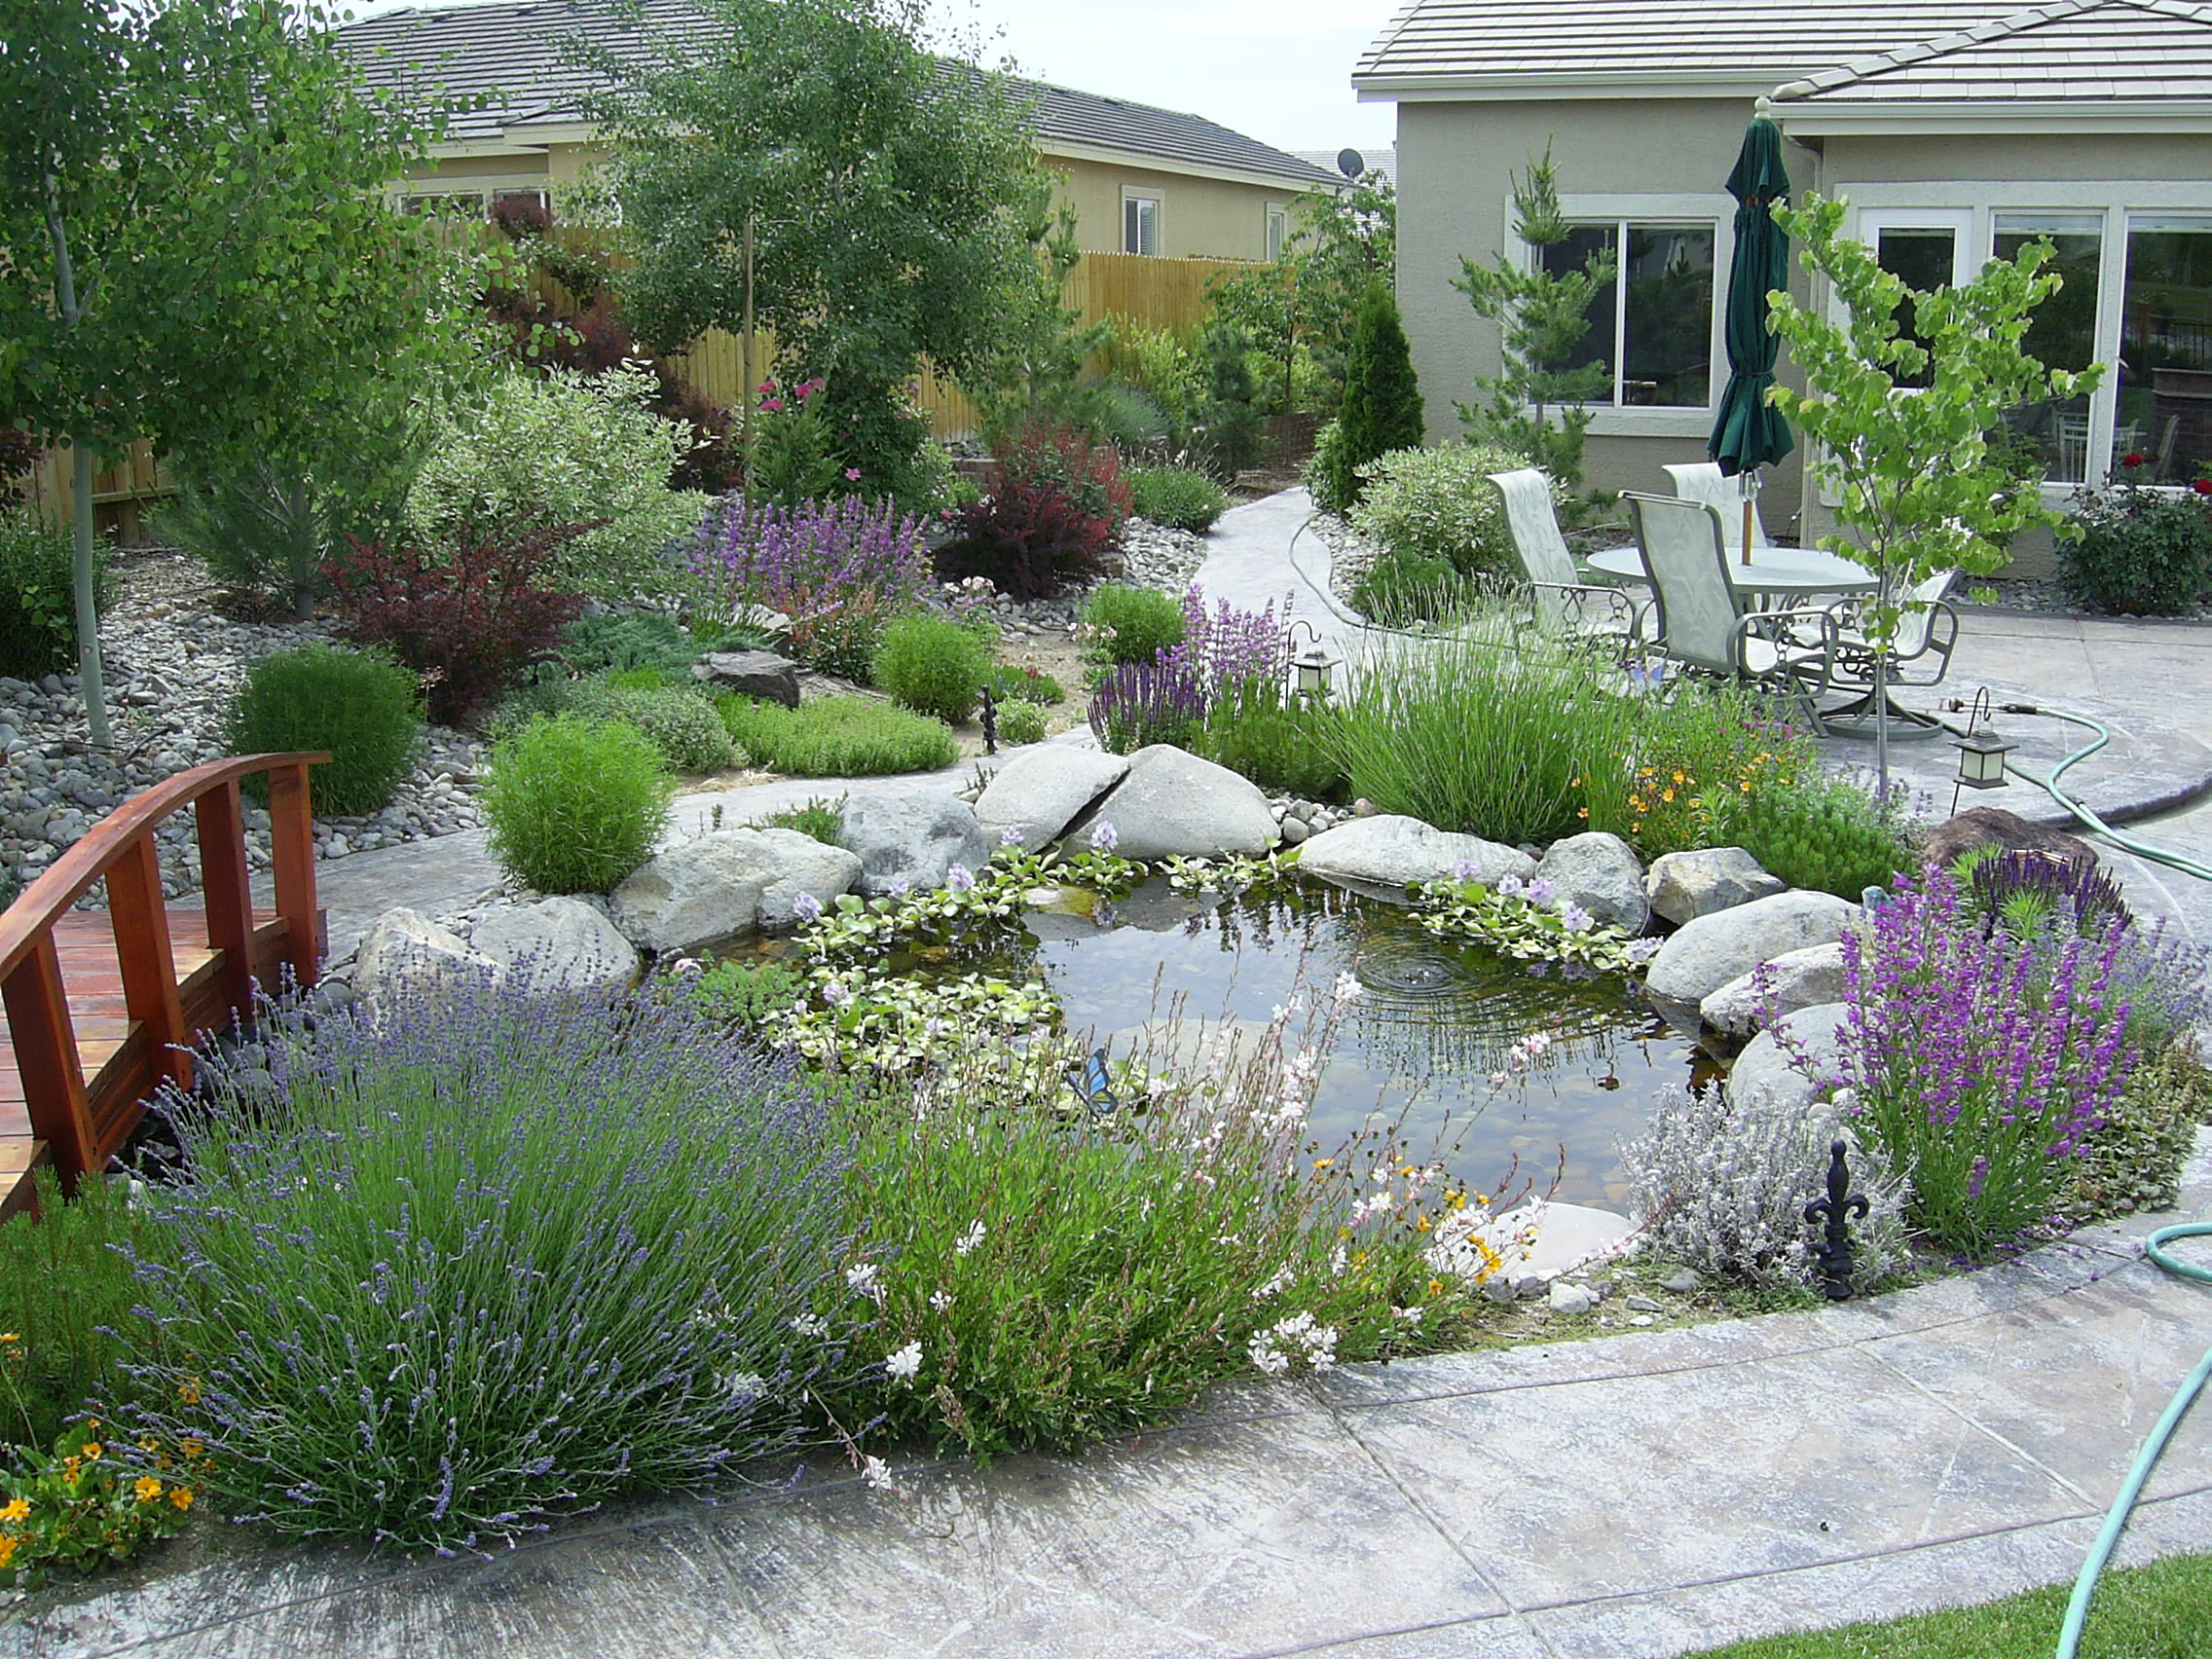 Landscape And Garden Design Implications Of Water: best backyard landscape designs